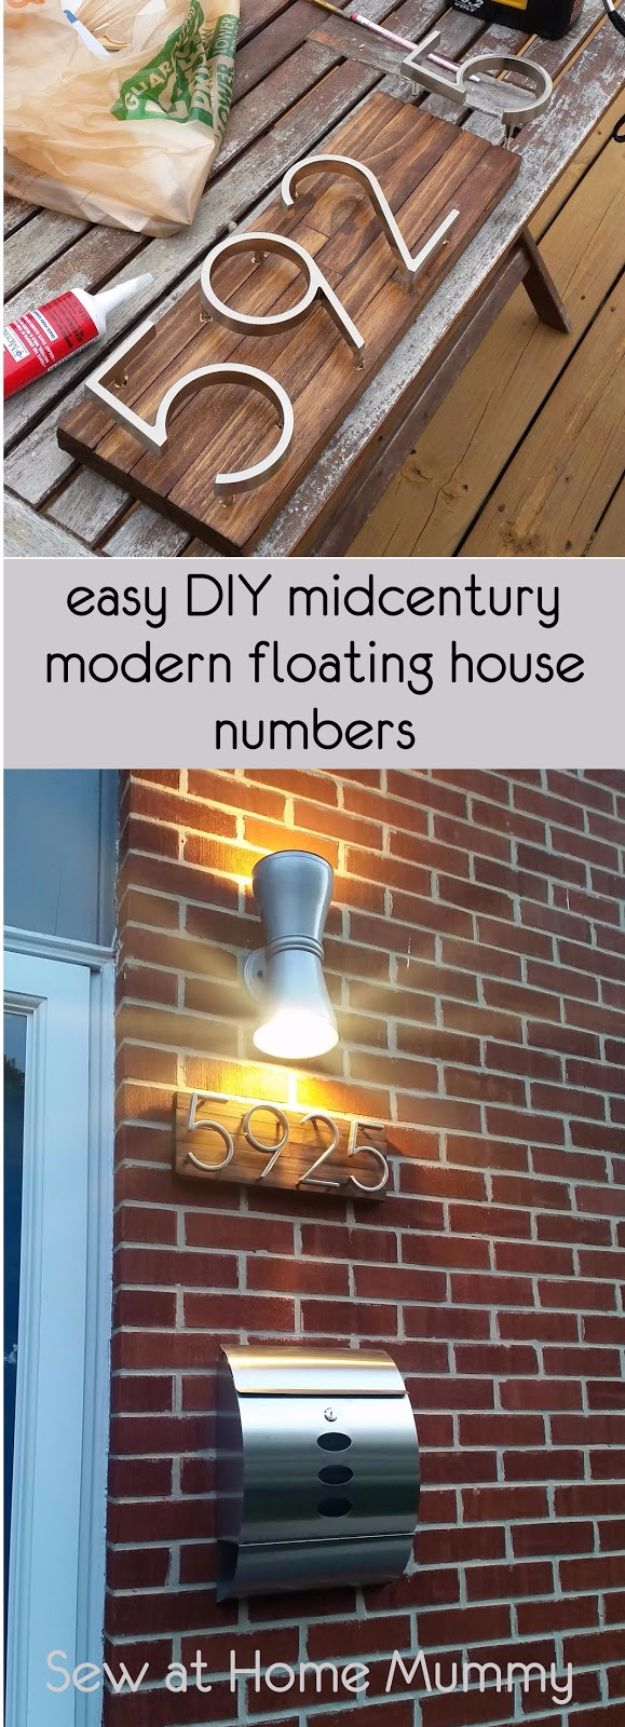 DIY House Numbers - Mid Century Modern Floating House Numbers - DIY Numbers To Put In Front Yard and At Front Door - Architectural Numbers and Creative Do It Yourself Projects for Making House Numbers - Easy Step by Step Tutorials and Project Ideas for Home Improvement on A Budget #homeimprovement #diyhomedecor